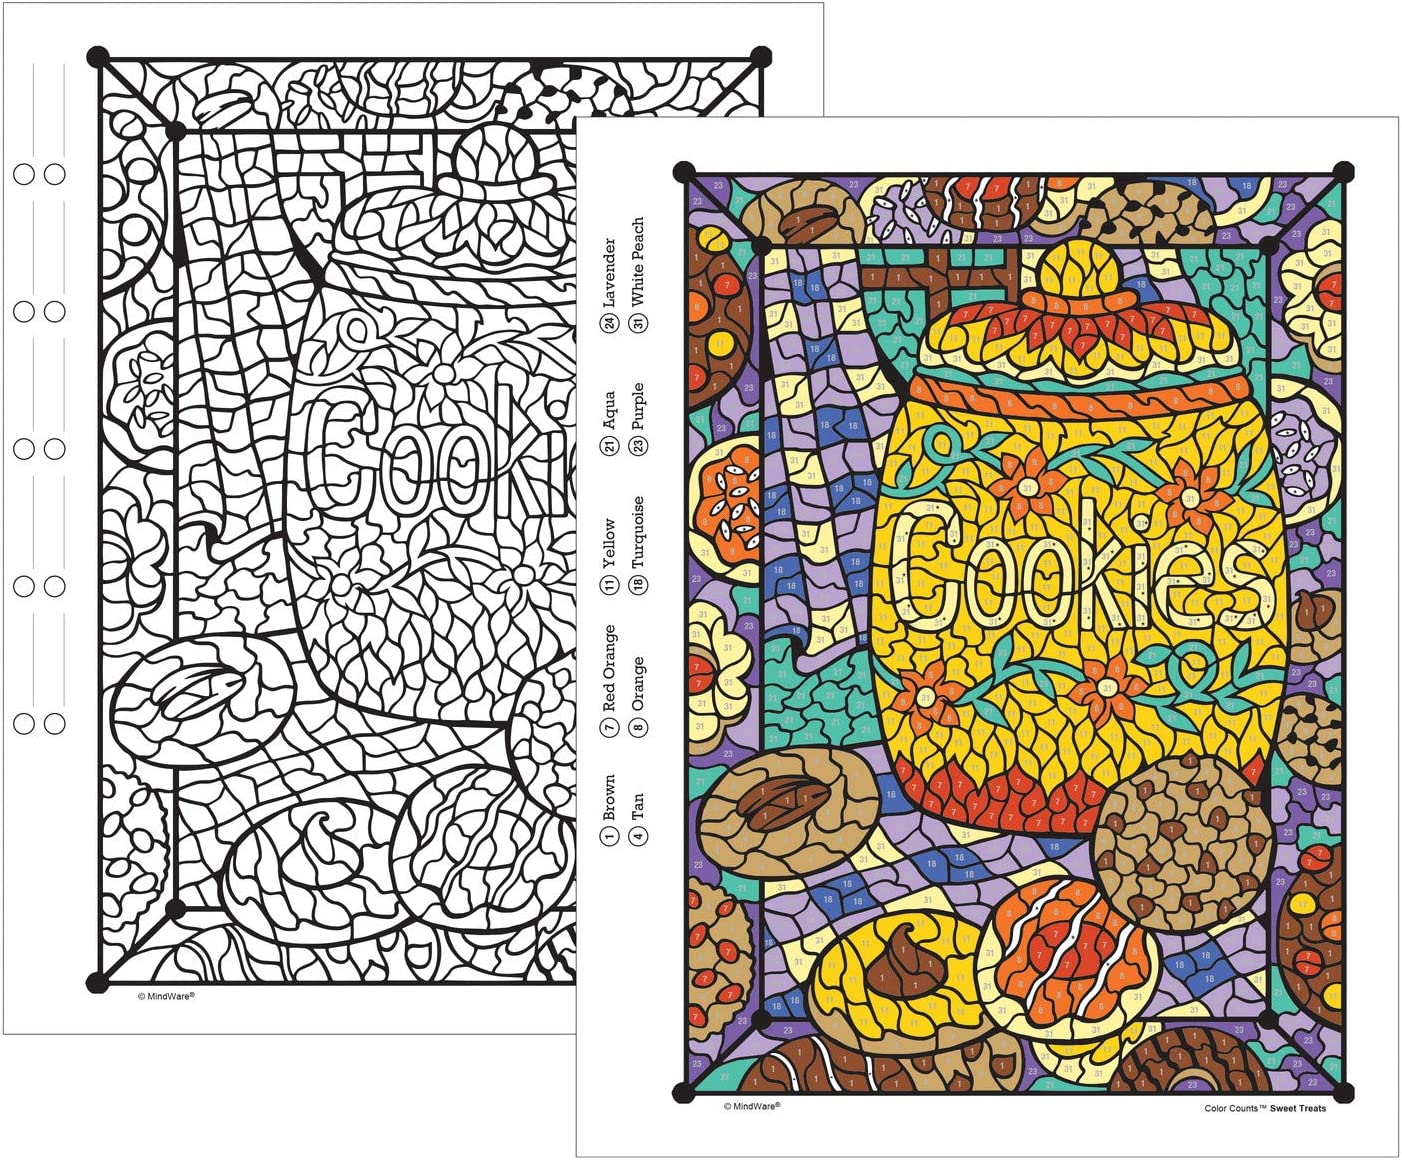 Activity Coloring Book For Kids Teens Adults Stress Free With 22 Beautiful Pages Relaxing Quiet Time Book For Boys Girls Mindware Color By Number Color Counts Glitter Sweet Treats Arts Crafts Craft